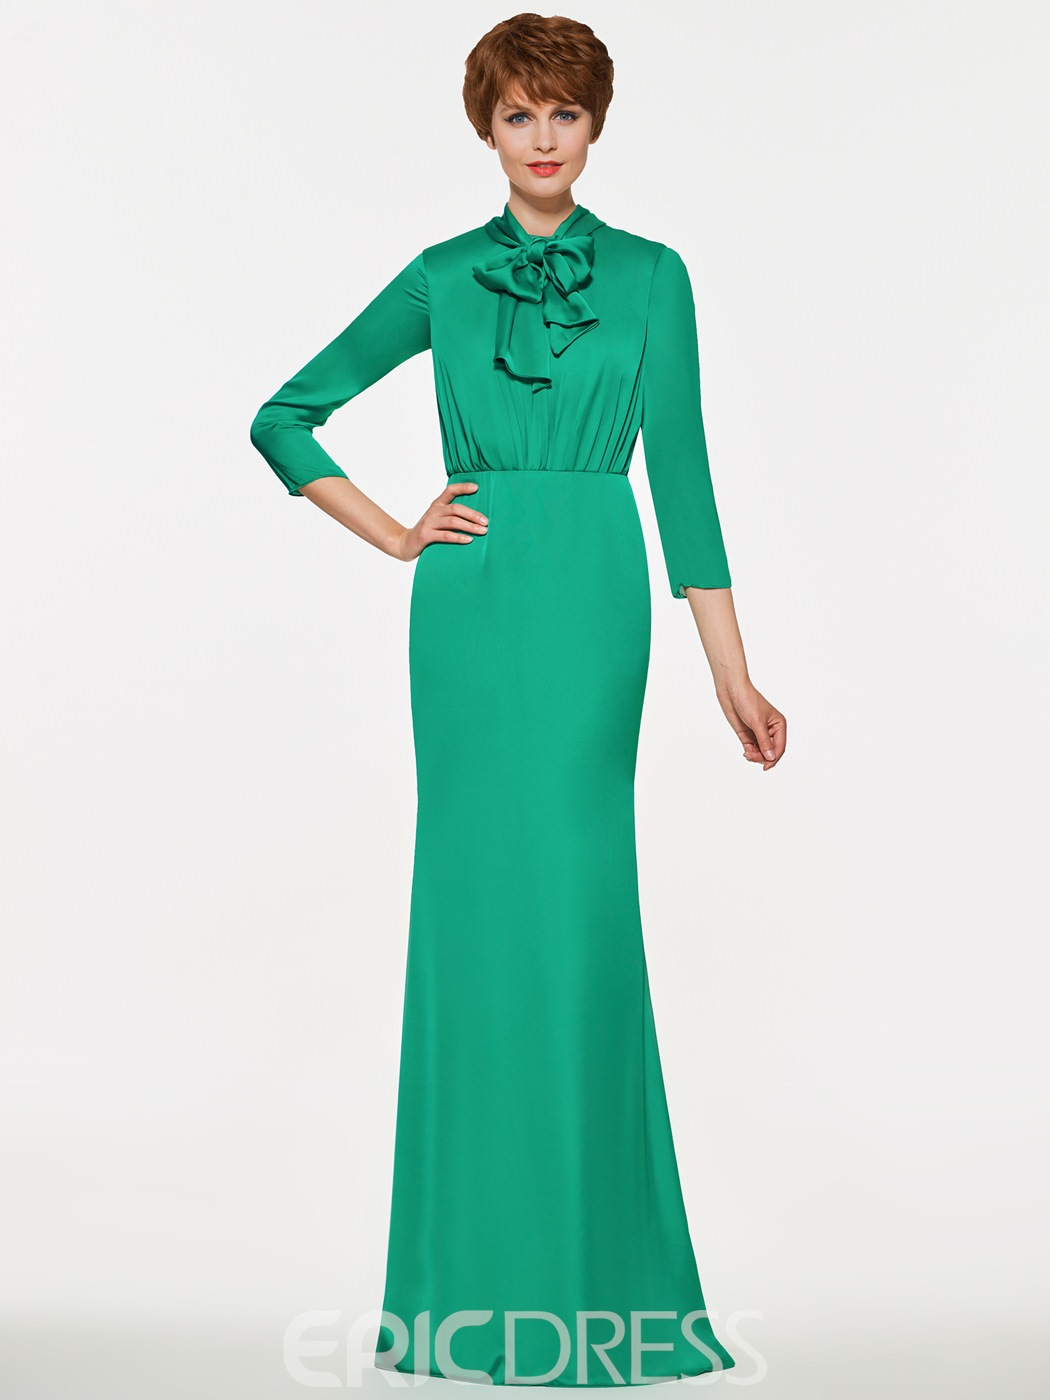 Ericdress High Neck 3/4 Length Sleeves Sheath Long Mother Of The Bride Dress